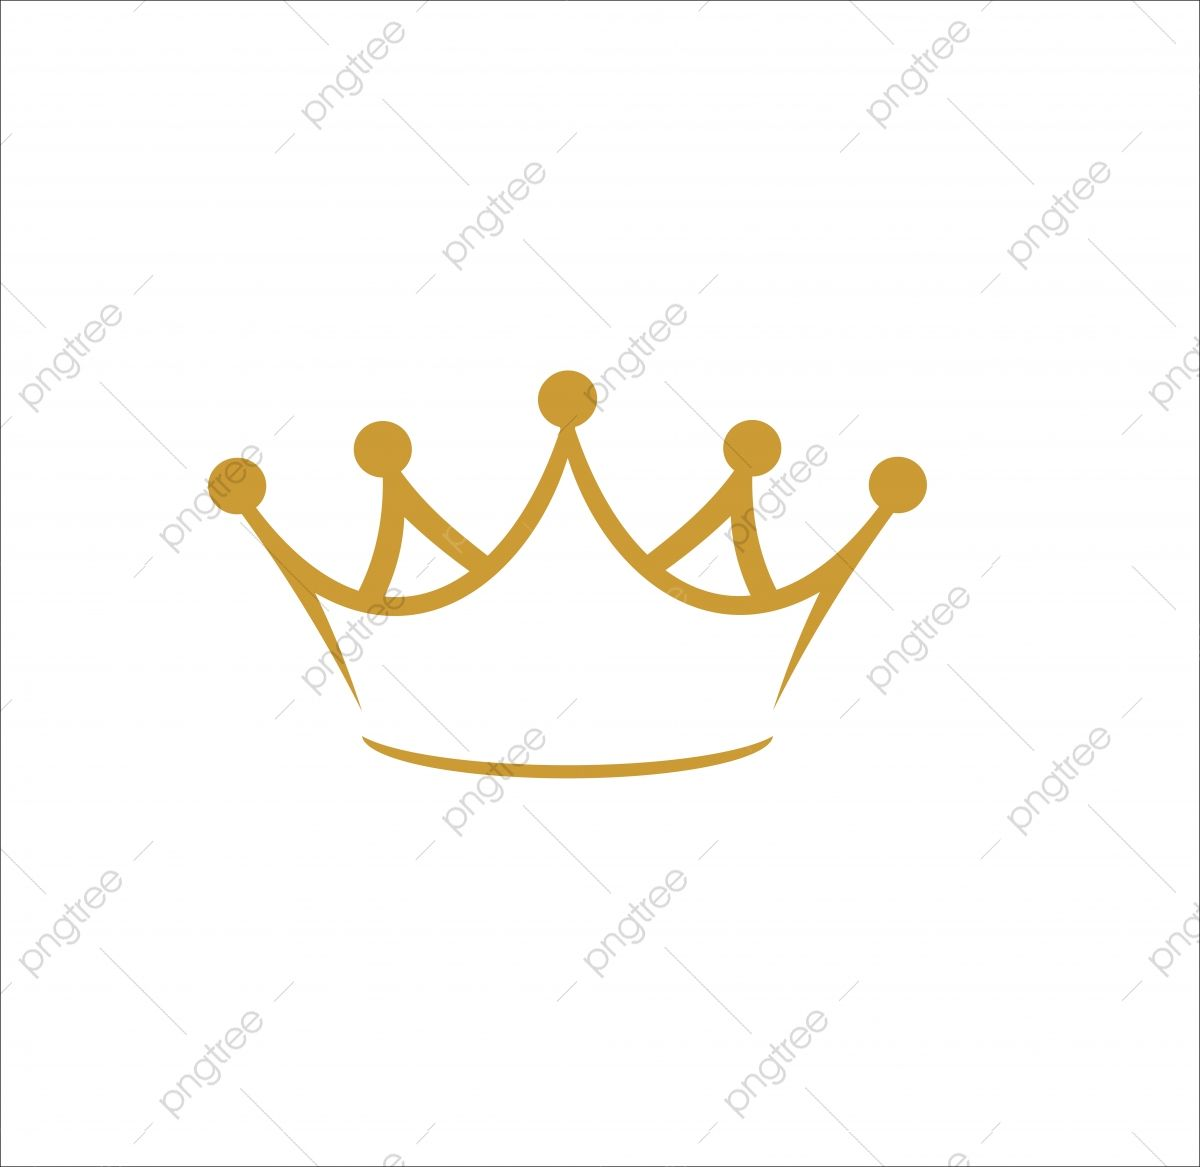 Crown Logo Design Vector Crown Clipart Logo Icons Crown Icons Png And Vector With Transparent Background For Free Download Logo Design Crown Logo Birthday Logo